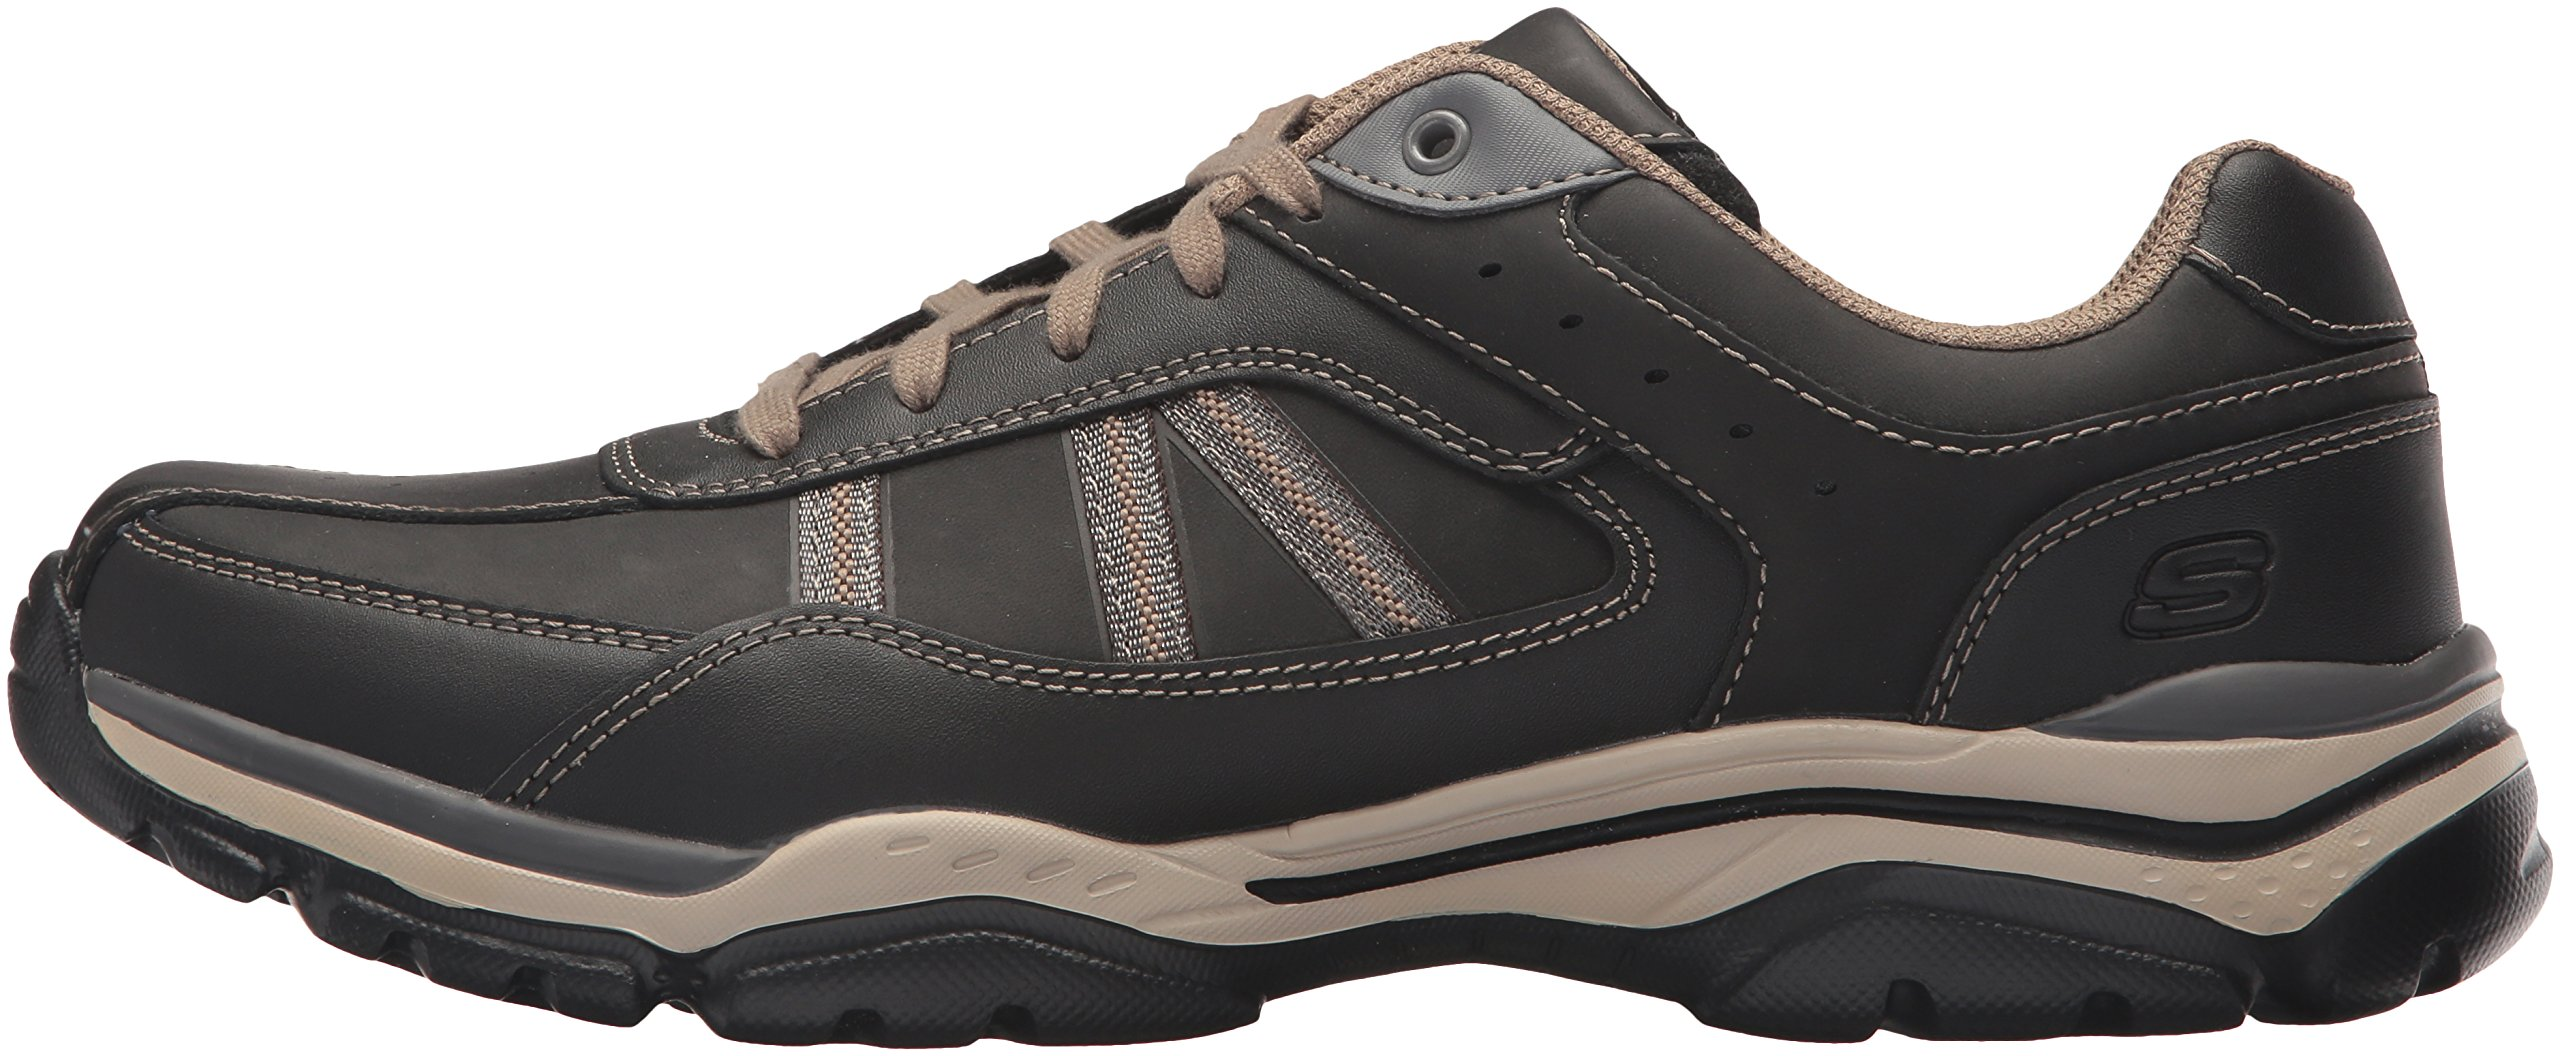 3be79b47334ea Skechers Men's Relaxed Fit-Rovato-Texon Oxford < Shoes < Clothing, Shoes &  Jewelry - tibs